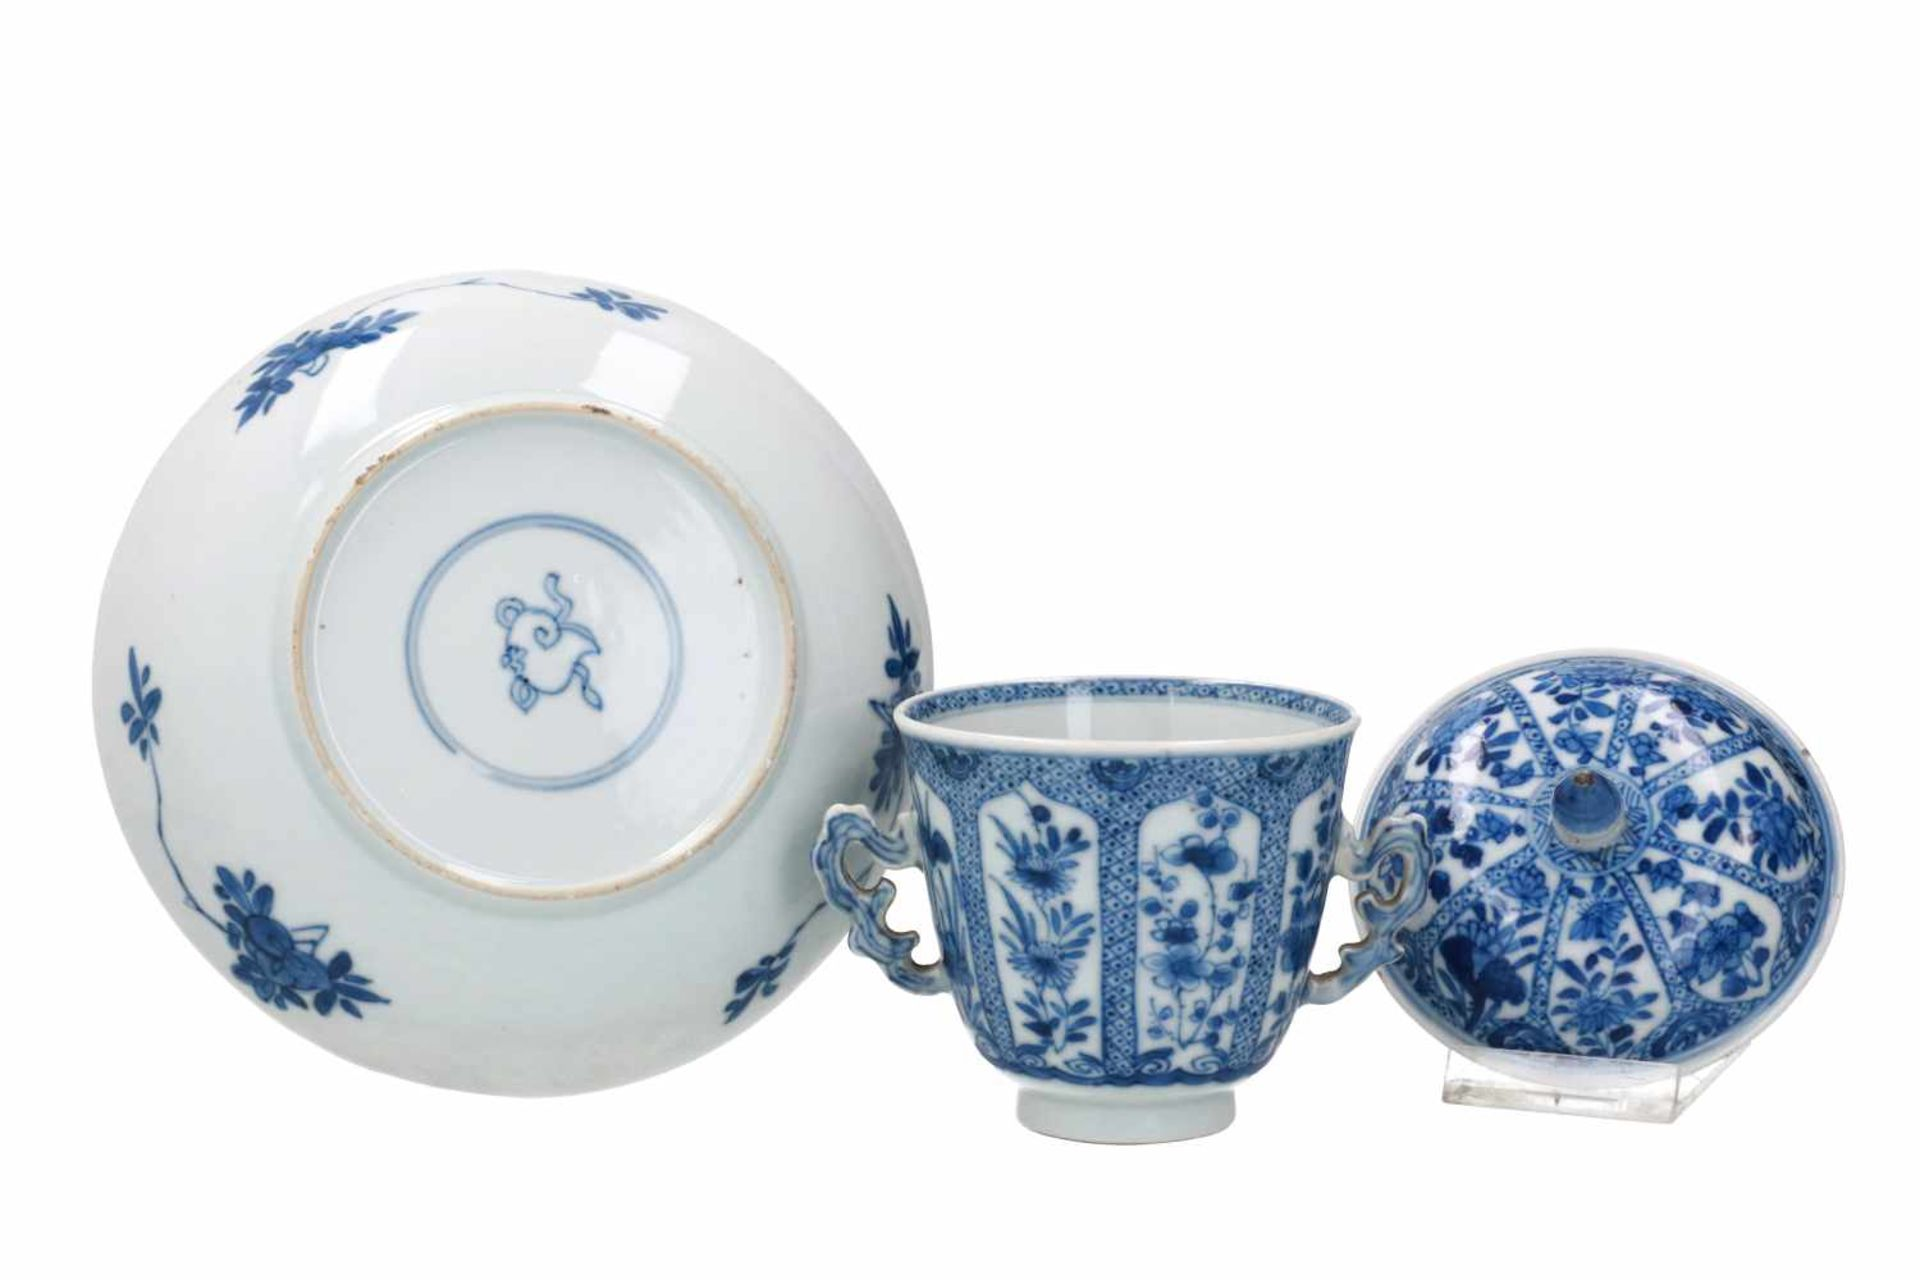 A blue and white porcelain lidded cup with two handles on a deep saucer, decorated with flowers. - Bild 2 aus 9